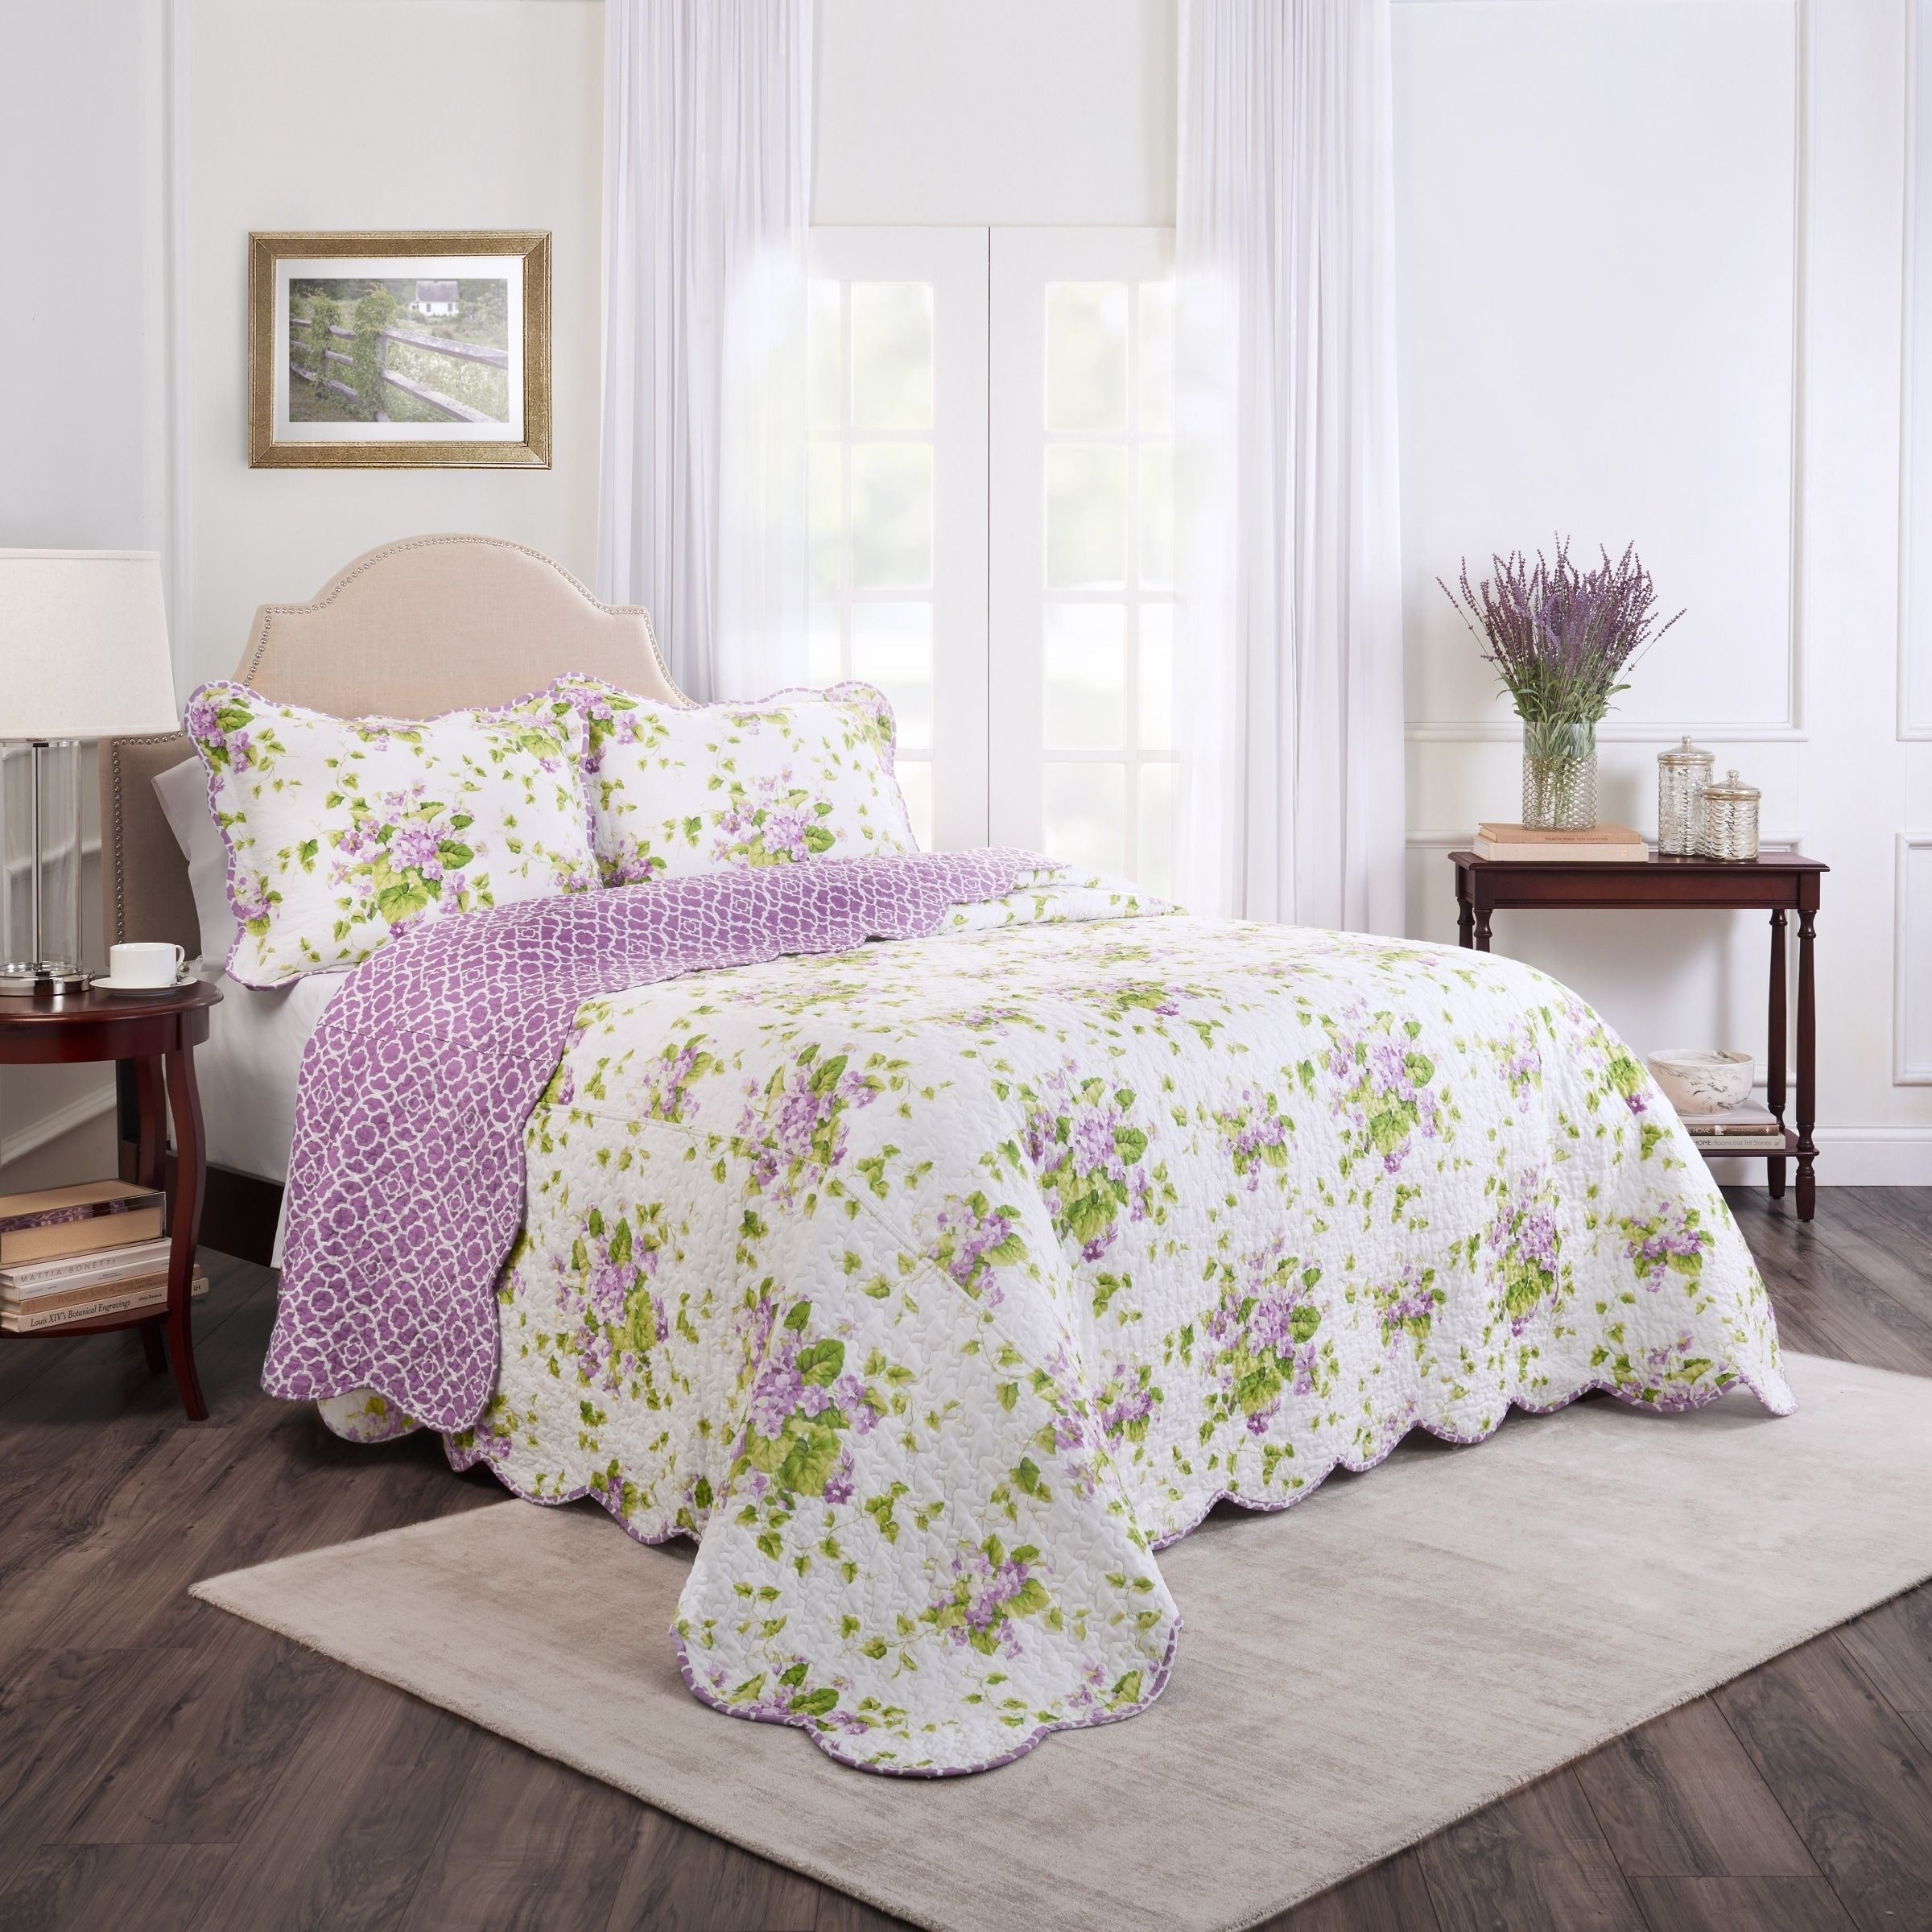 Overstock Com Online Shopping Bedding Furniture Electronics Jewelry Clothing More Bed Spreads Bedspread Set Waverly Bedding